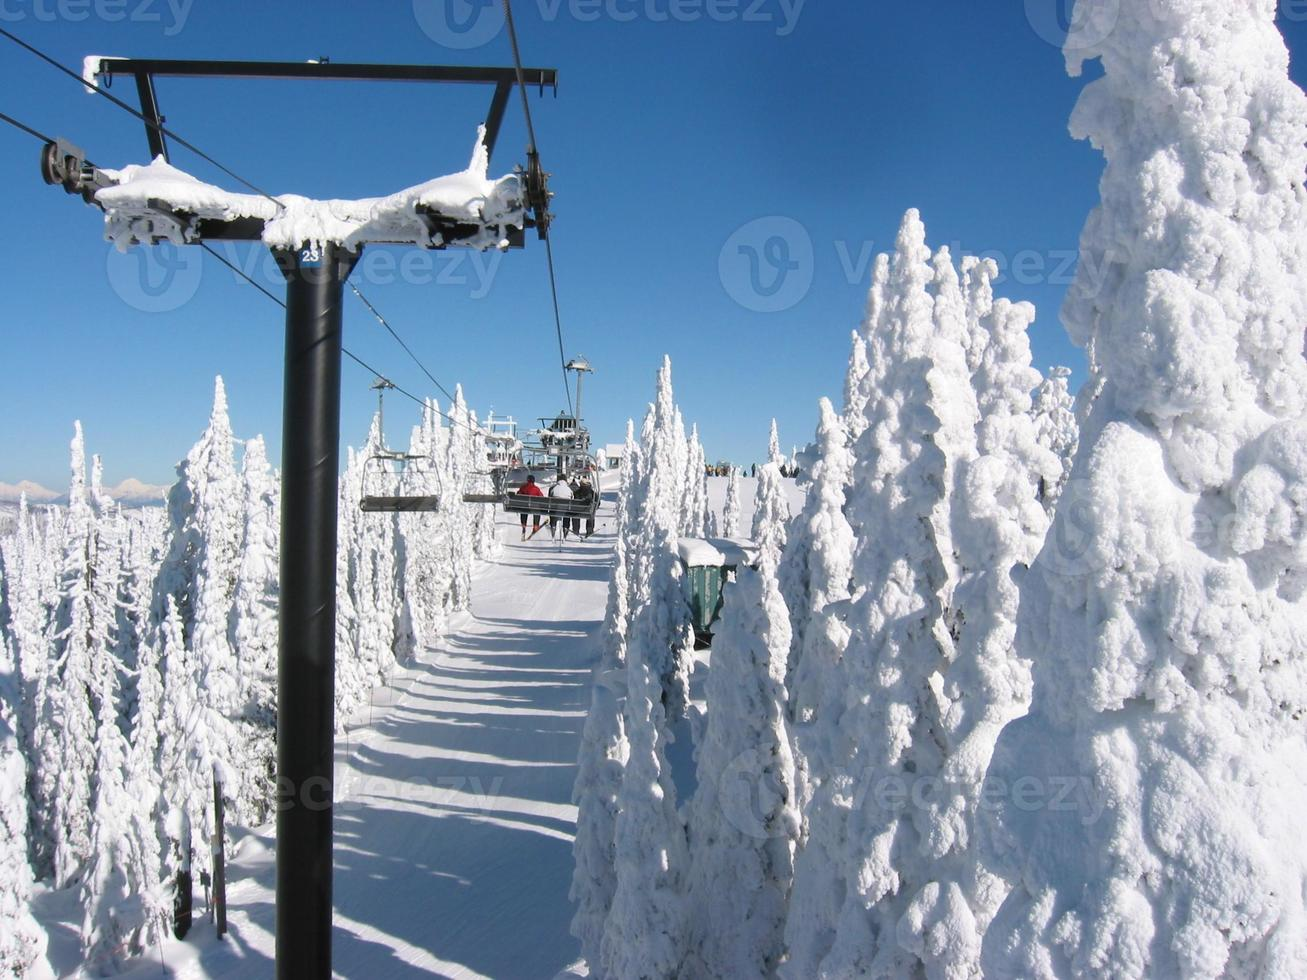 Fantastic day for skiing photo